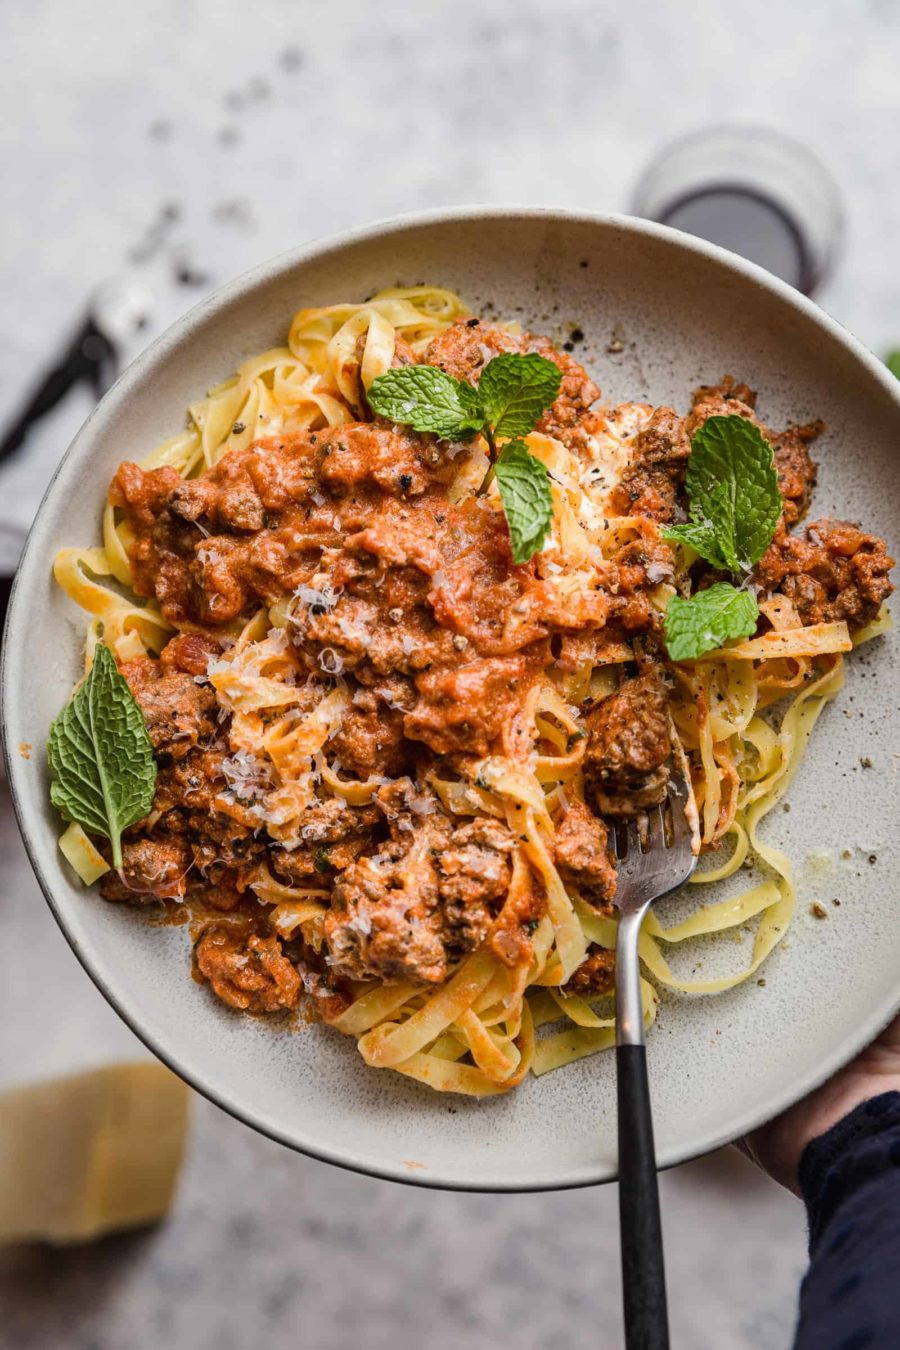 Lamb and Mint Ragu